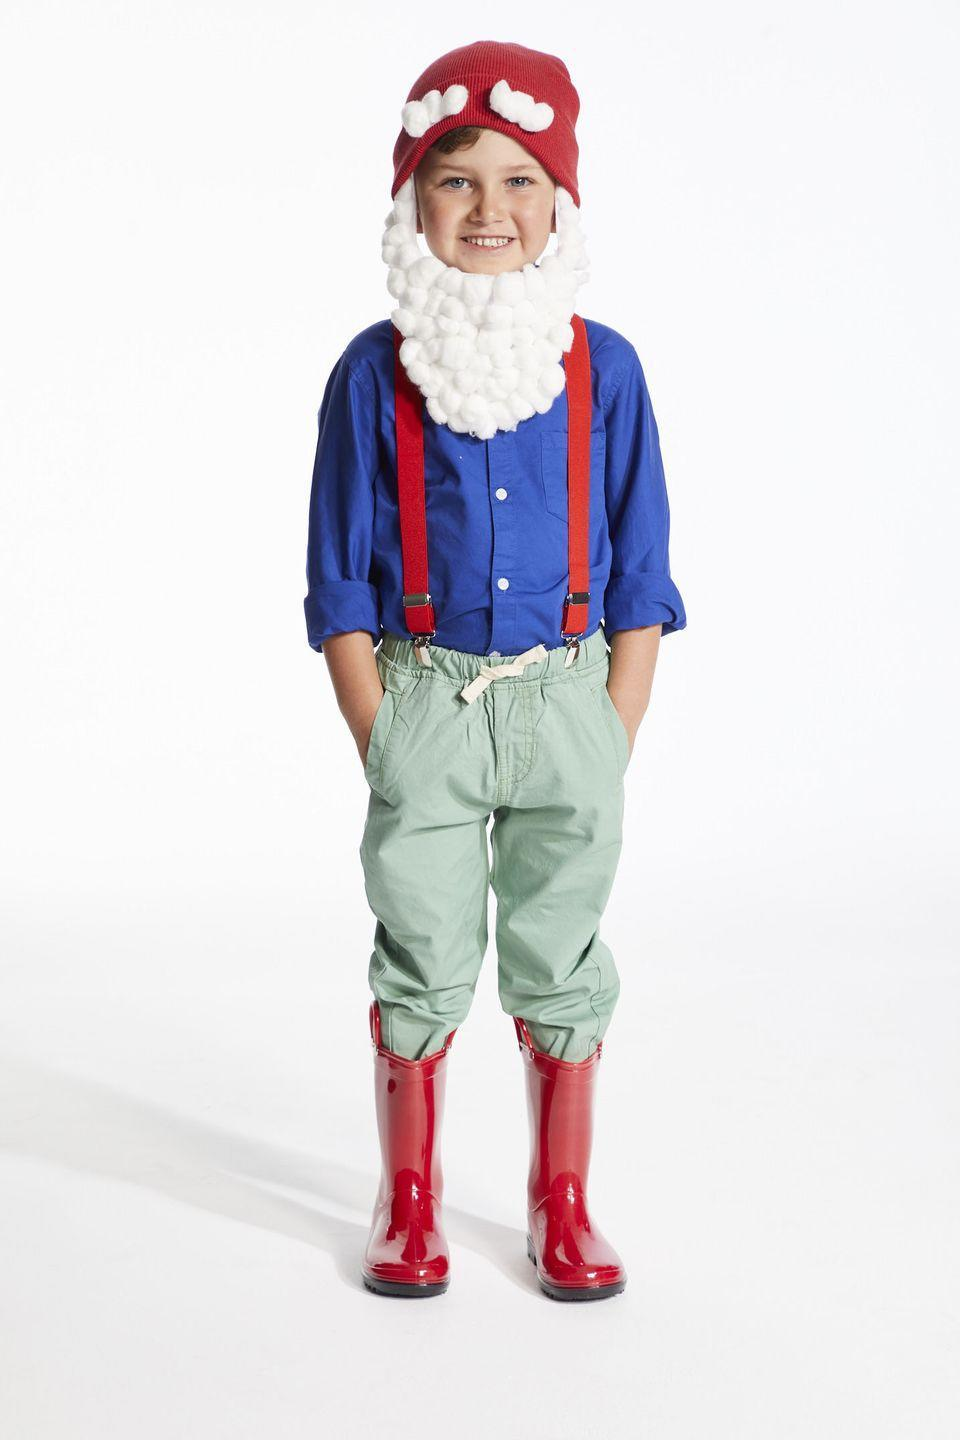 <p>Gnome is where the heart is. Have fun with this easy to make DIY costume. </p><p><strong>Step 1</strong>: Cut out a beard shape out of the white felt with long sideburn sides (make sure you make the beard according to the costume wearers face size).</p><p><strong>Step 2</strong>: Using the glue gun attach velcro to the top of each sideburn.</p><p><strong>Step 3</strong>: Cover the remaining felt with cotton balls attaching them with small dots of hot glue.</p><p><strong>Step 4</strong>: Cut out two eyebrow shapes out of the white felt.</p><p><strong>Step 5</strong>: Hot glue velcro onto the back of the eyebrows.</p><p><strong>Step 6</strong>: Cover the front with cotton balls attaching them with small dots of hot glue.</p><p><strong>Step 7</strong>: Attach the velcro eyebrows with hot glue to the fold of the beanie so they are on.</p><p><strong>Step 8</strong>: Attach the velcro on the sideburns to the inside of the hat when the hat is on to ensure the right placement. Detach the velcro, while keeping one side attached to the hat and take the hat off. Using the hot glue reinforce the velcro to make sure it is securely on. Re-attach the velcro attached to the beard. </p>